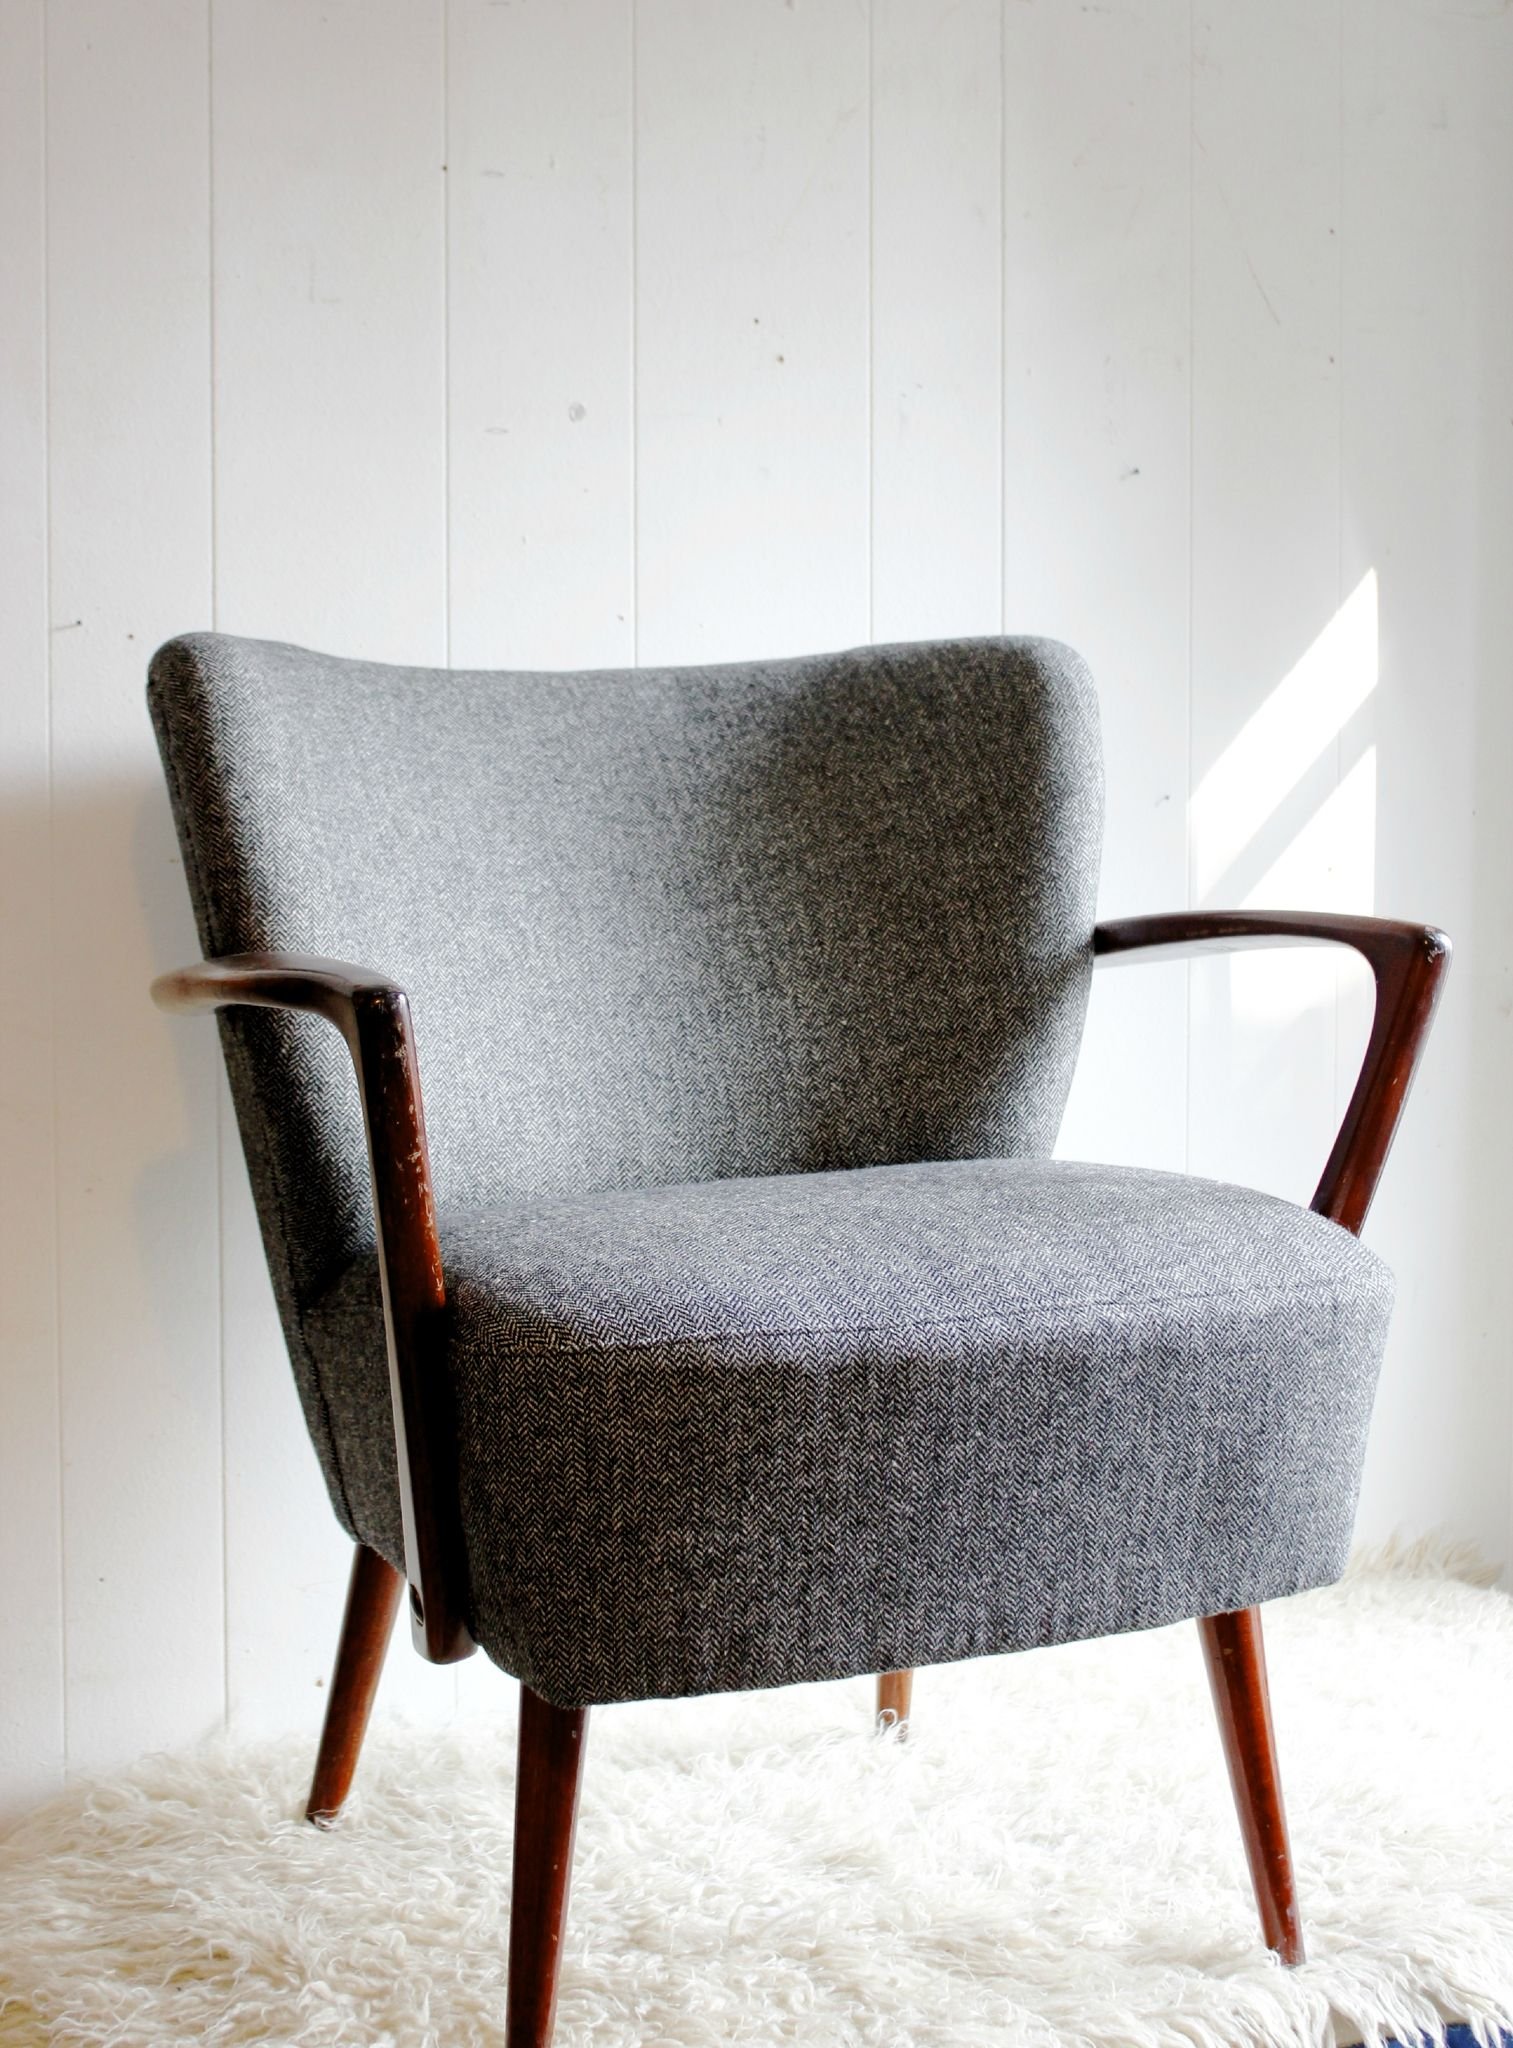 17 Best Images About Poltrone On Pinterest | Modern, Armchairs And  Mid Century Modern